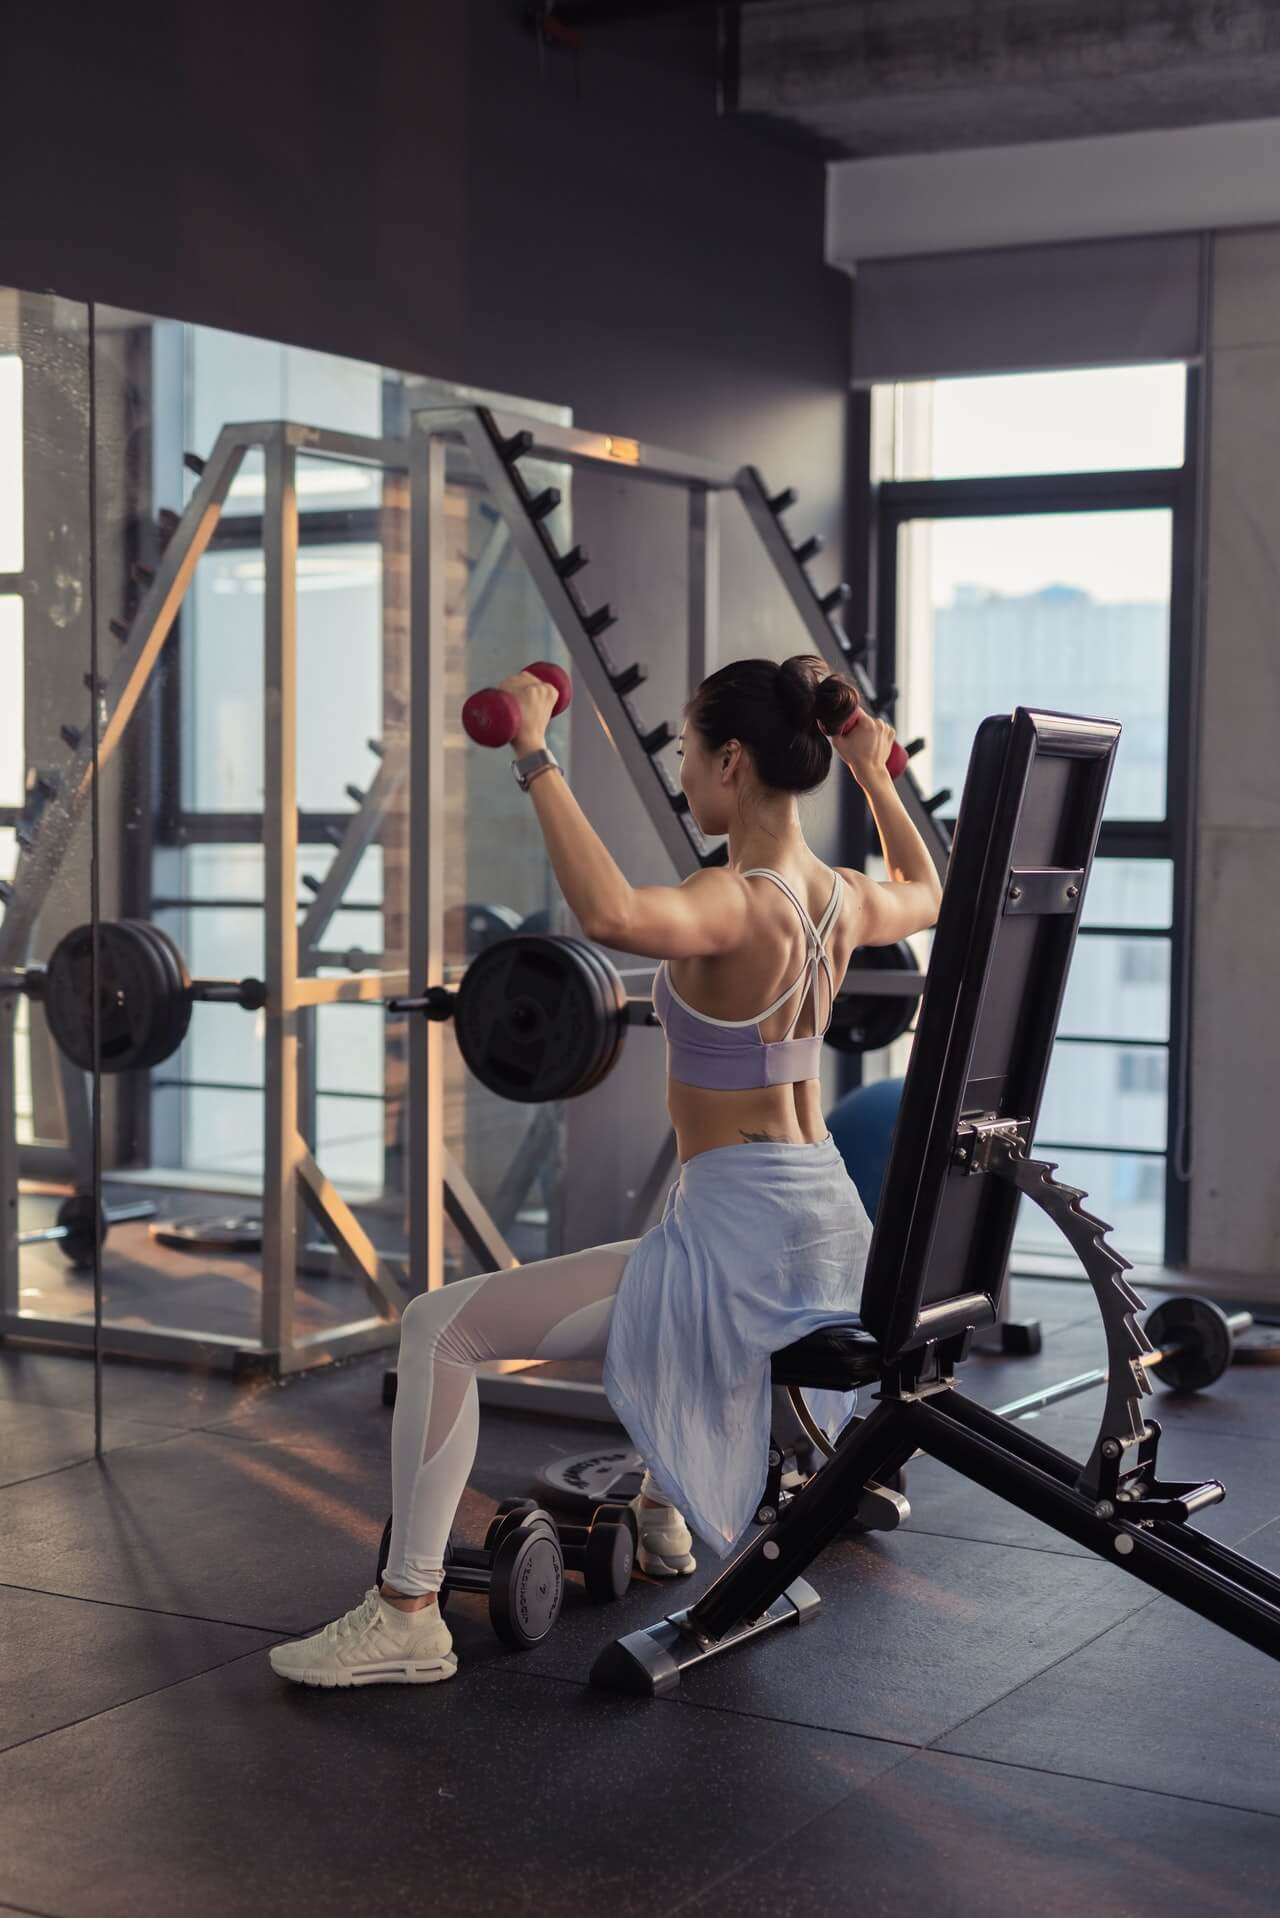 a woman at the gym working out with dumbbells